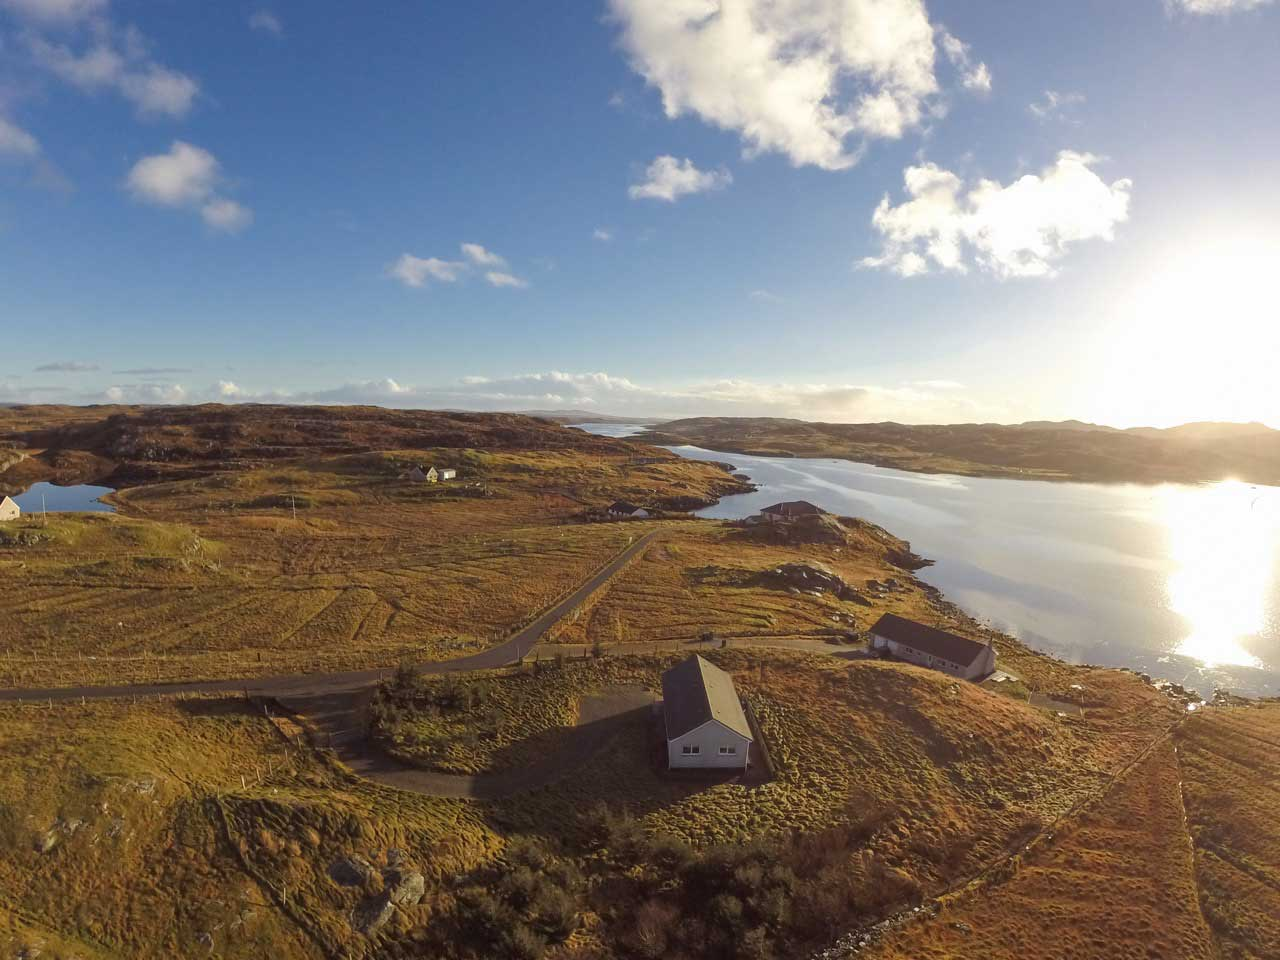 Taigh Solas Self Catering Holiday Cottage, Great Bernera, Lewis